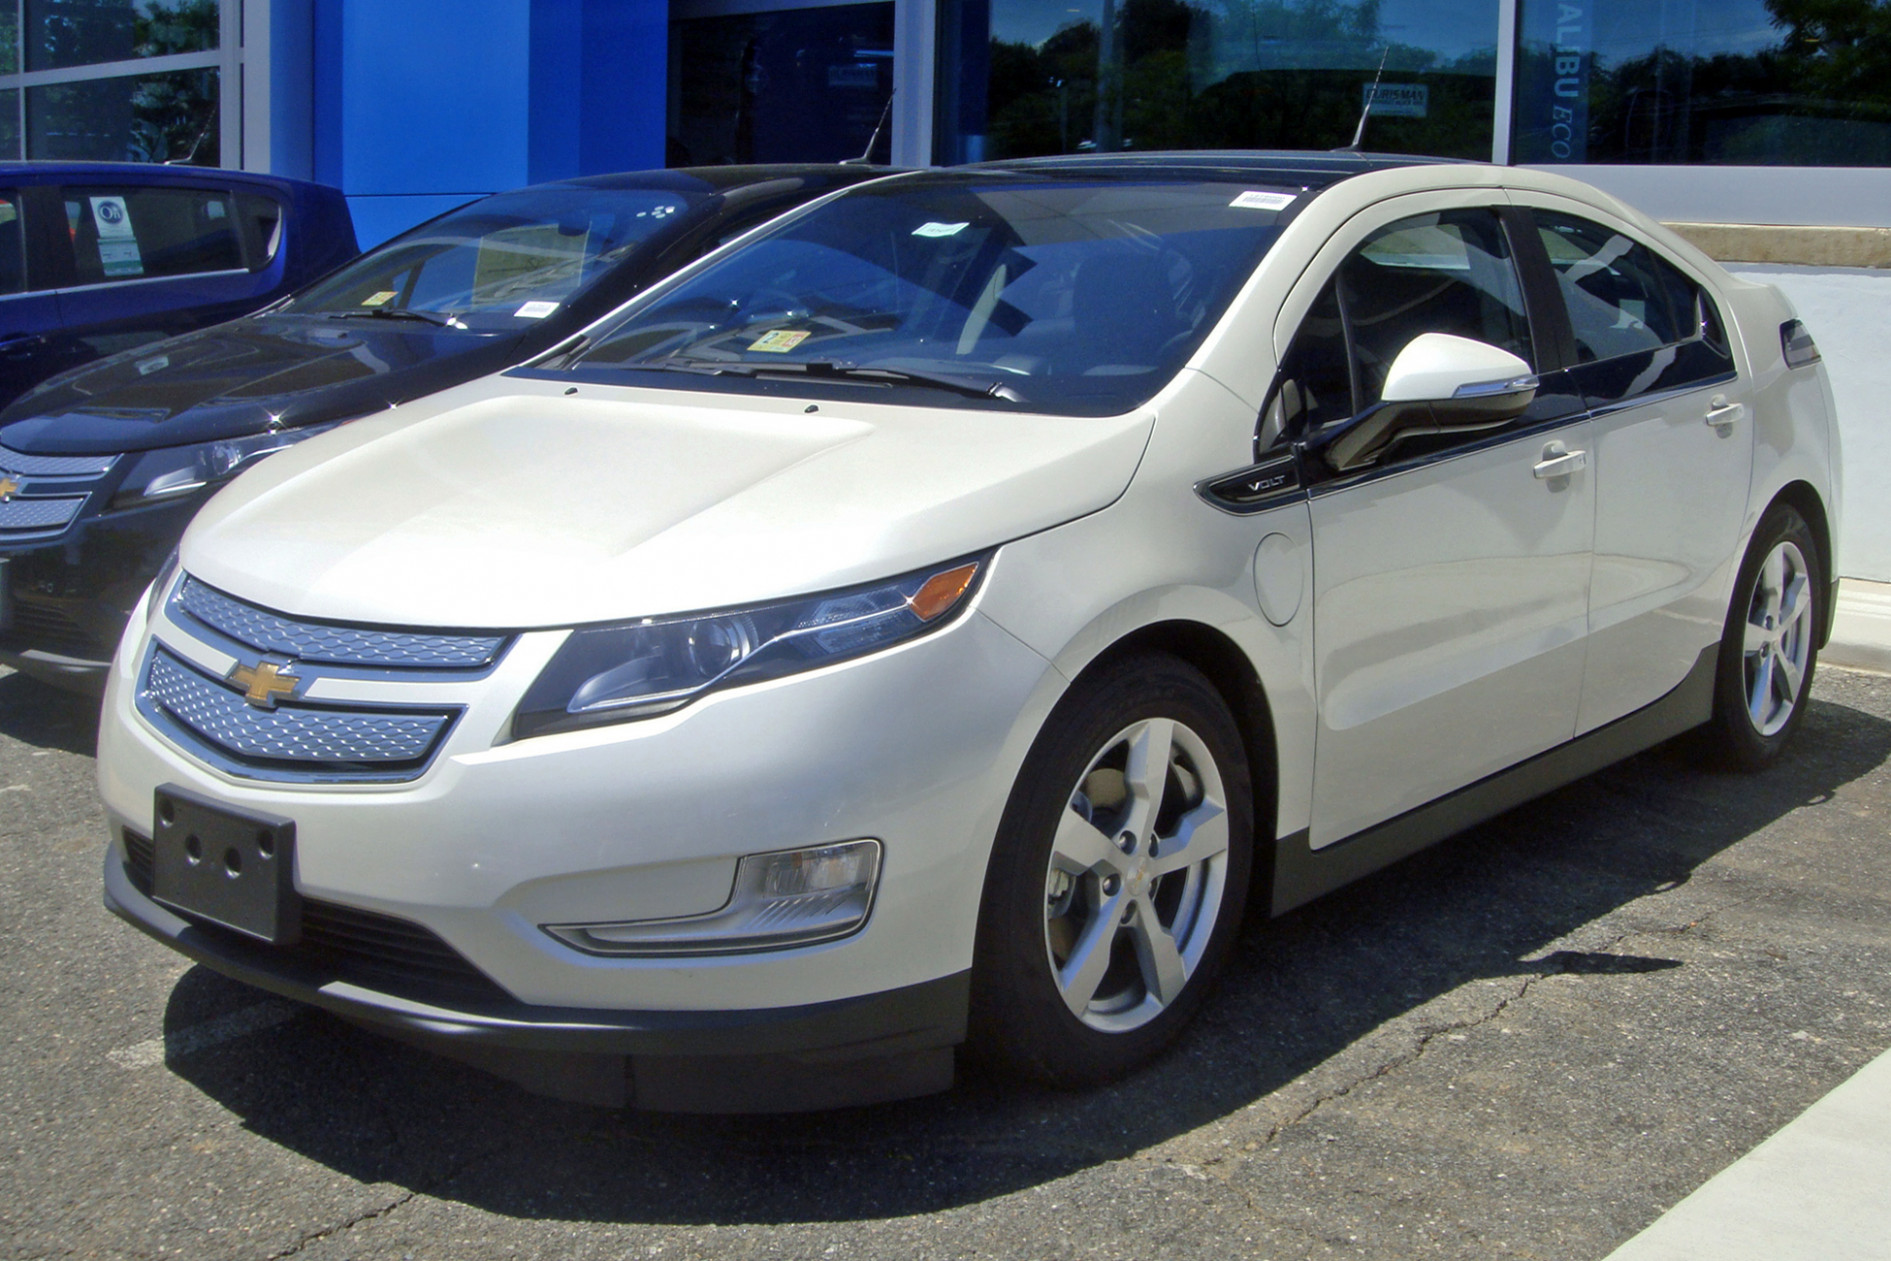 Chevrolet Volt - Wikipedia - 2020 chevrolet volt premier for sale